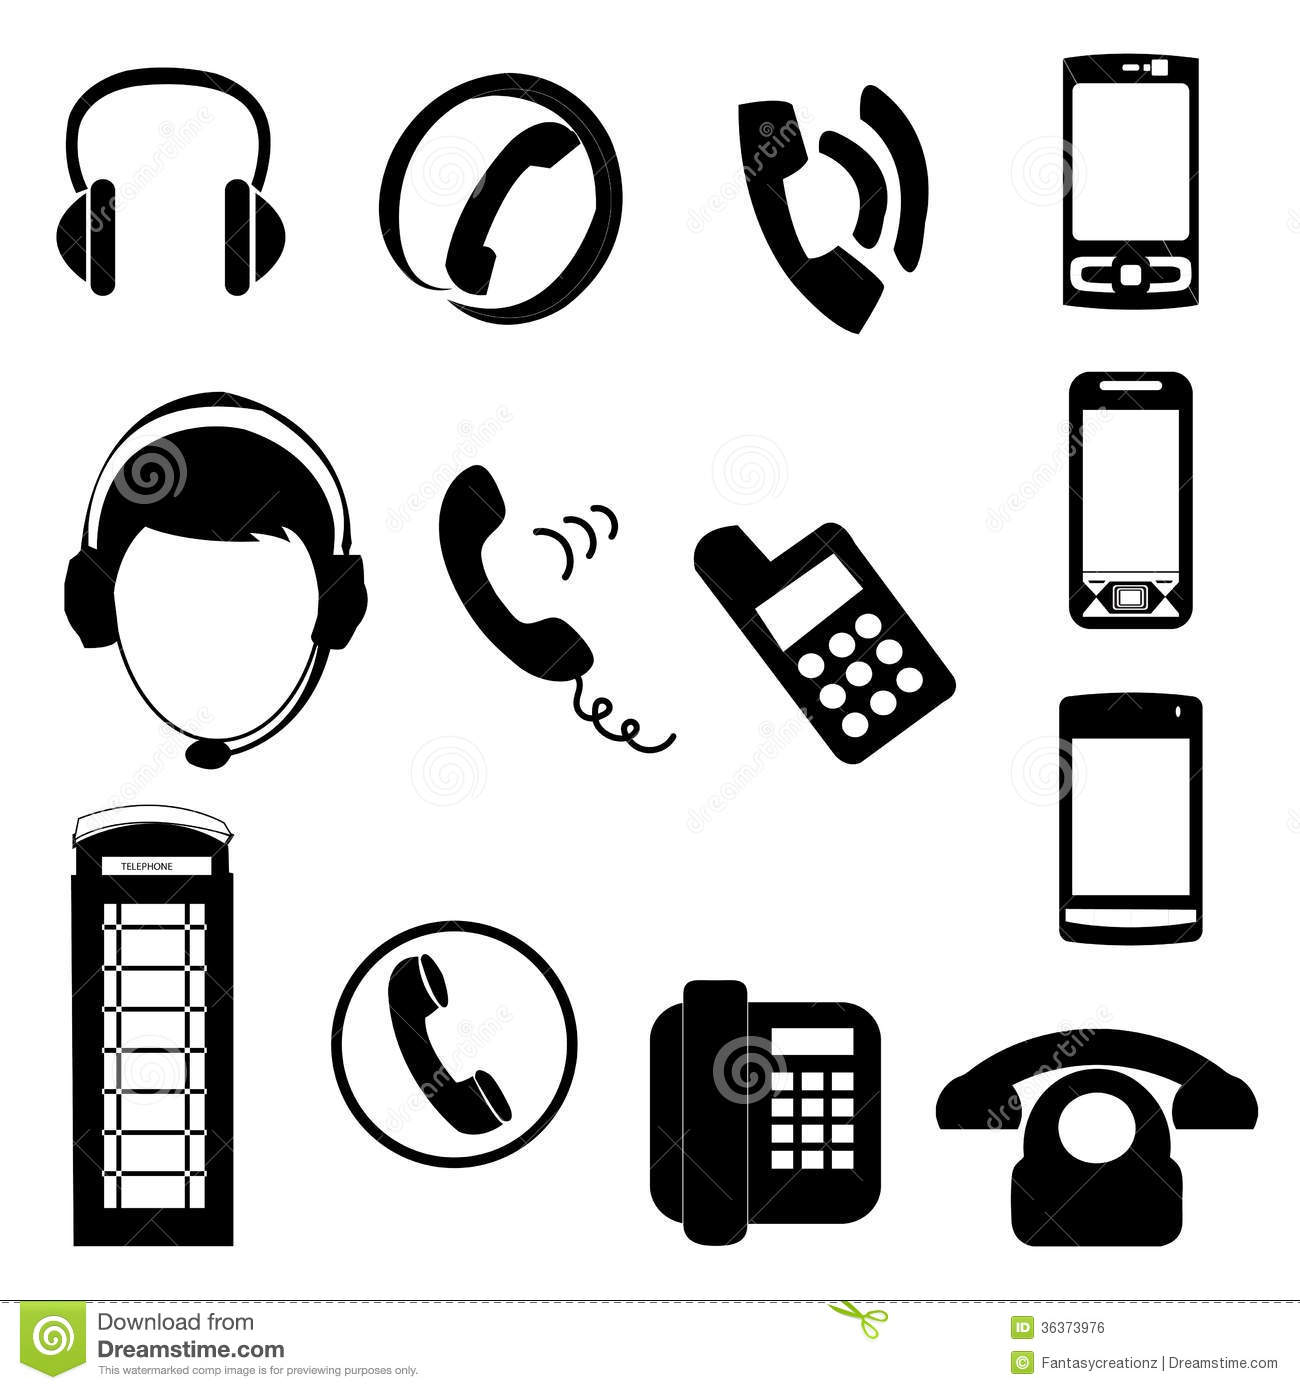 Contact Icons Royalty Free Stock Image - Image: 36373976